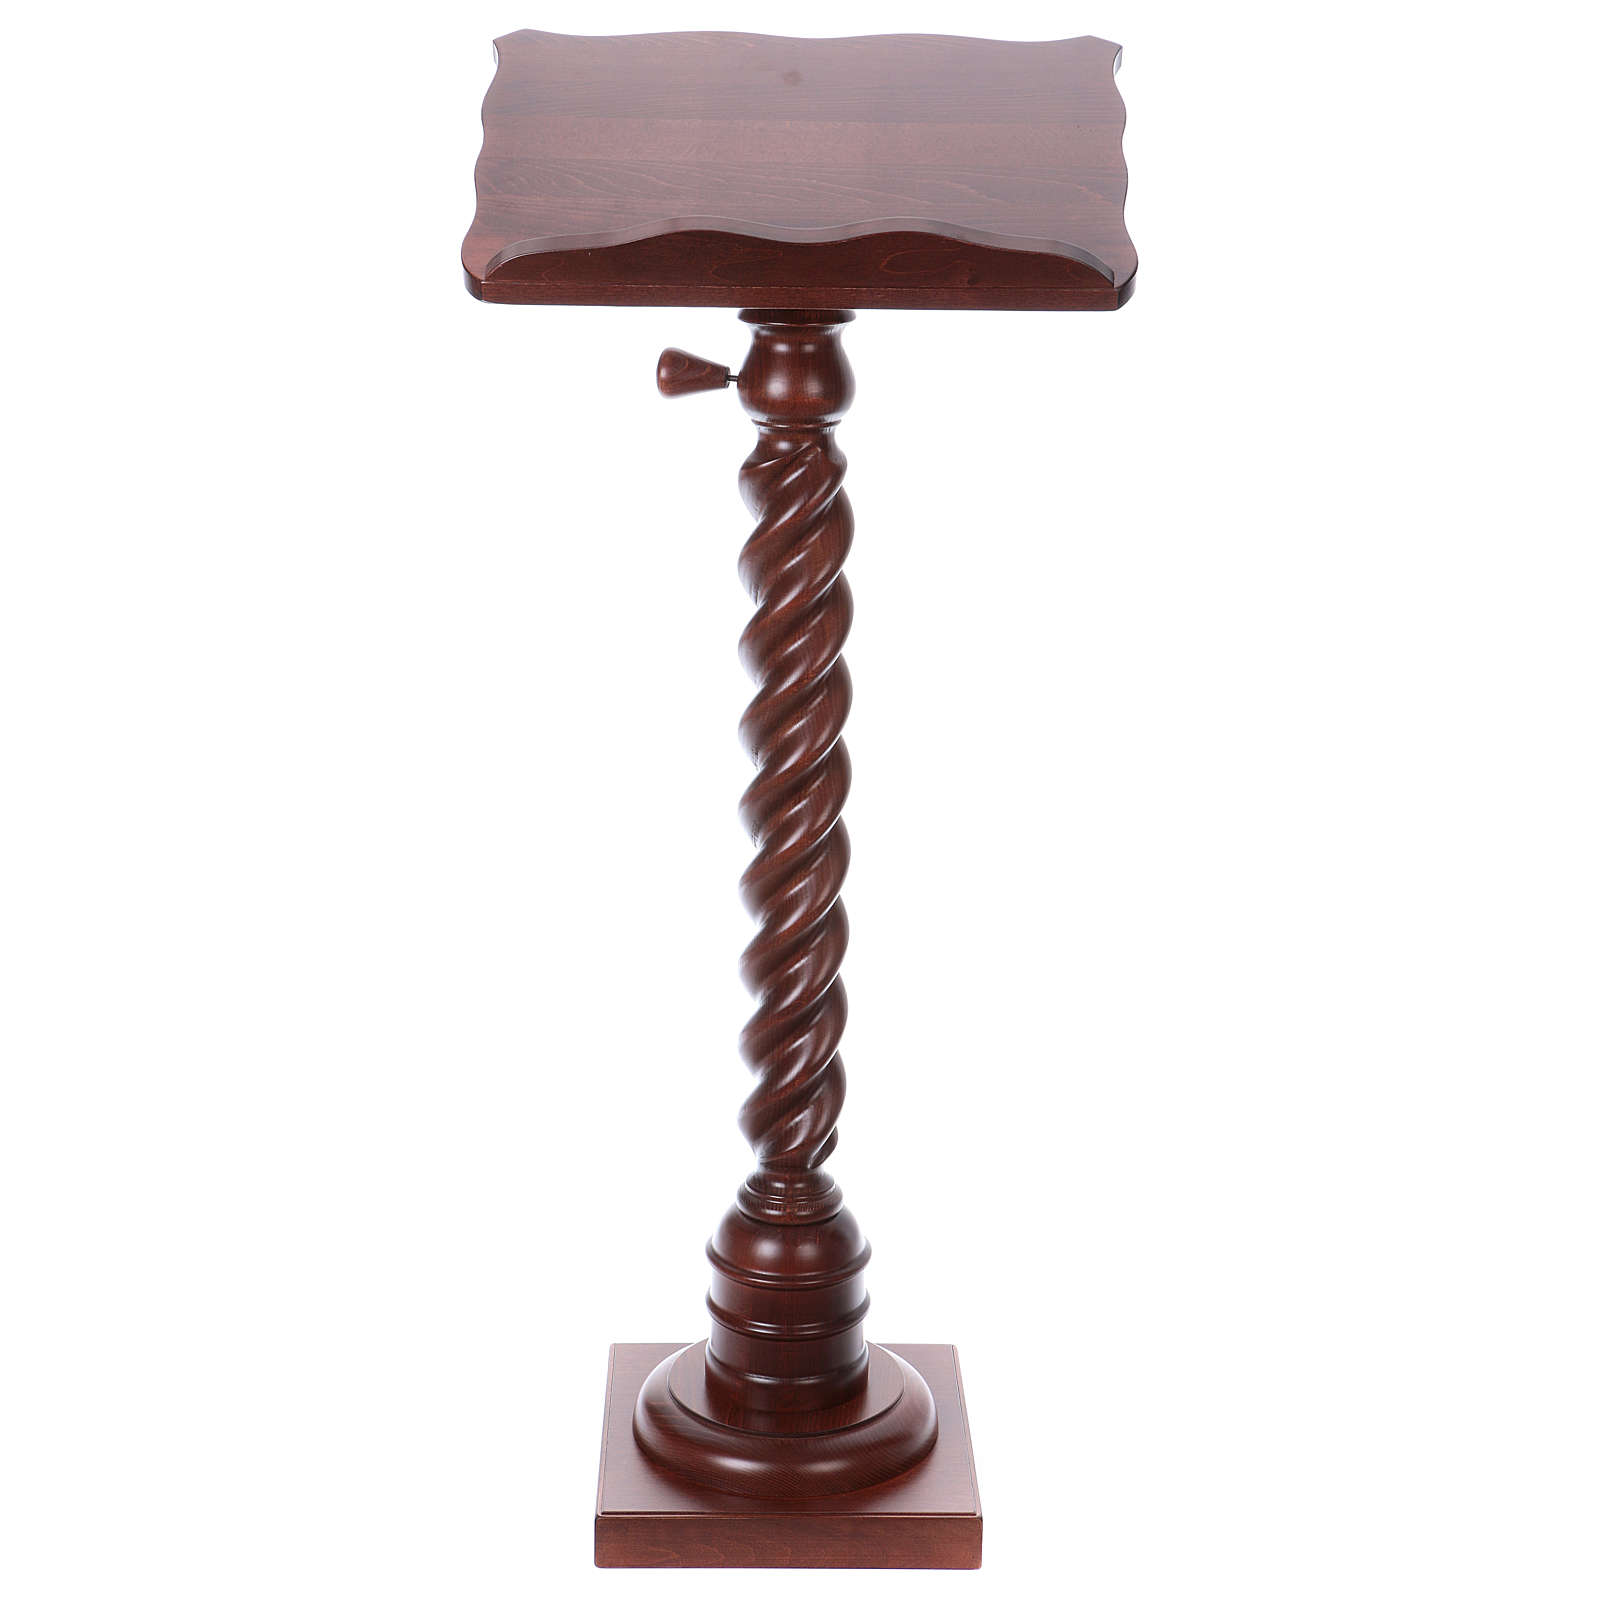 Wood lectern with torchon pedestal 4